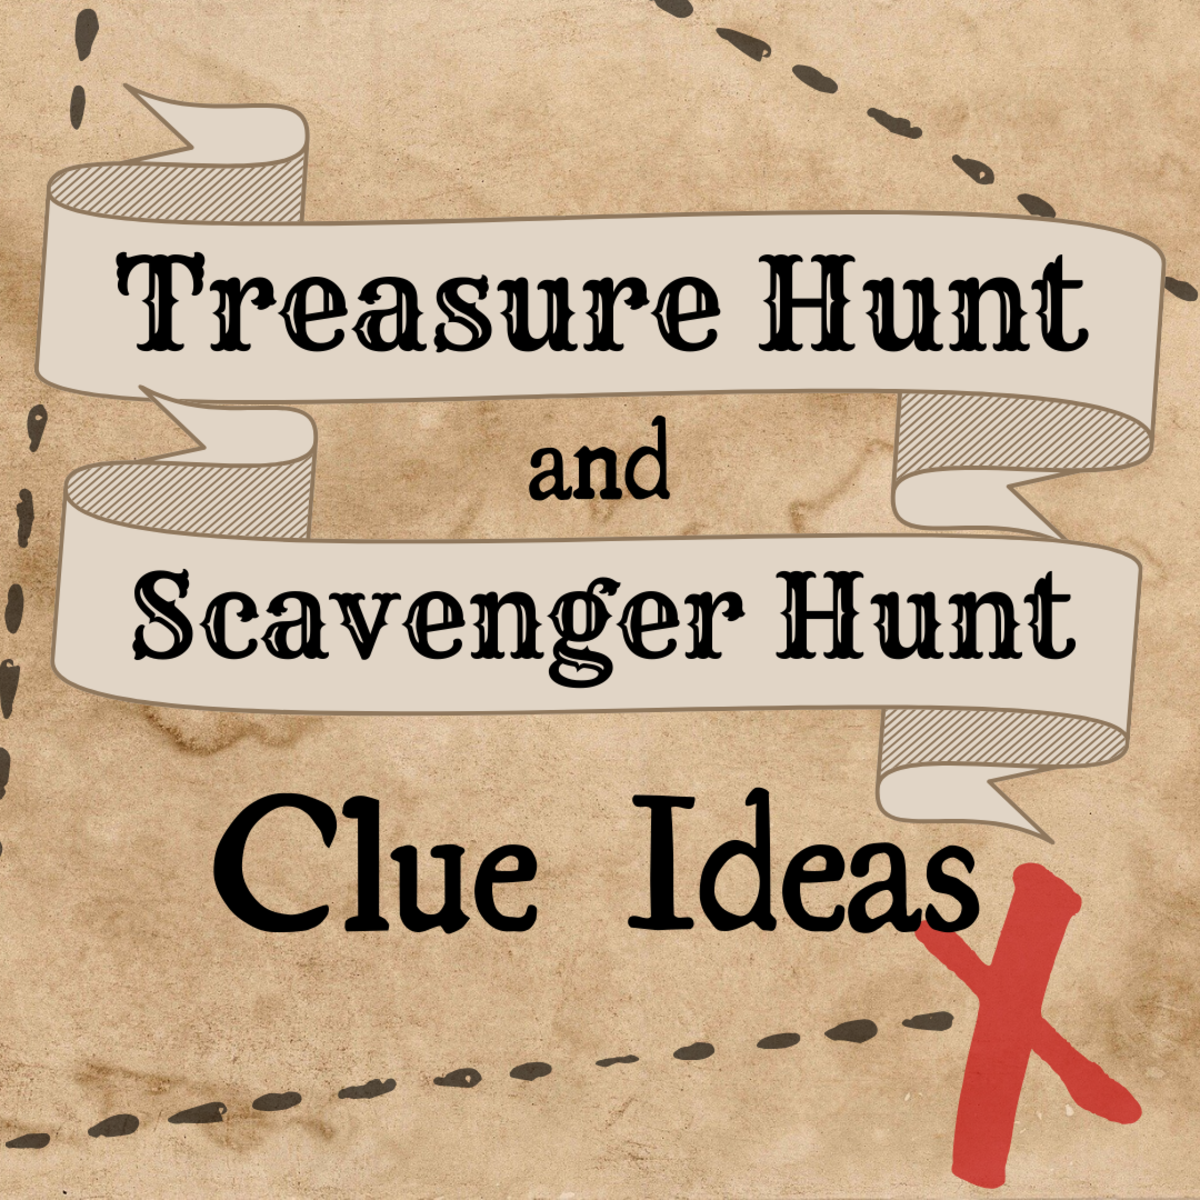 Discover ten types of clues you can use in a treasure hunt or scavenger hunt, from rebuses and mazes to mirror clues and maps!